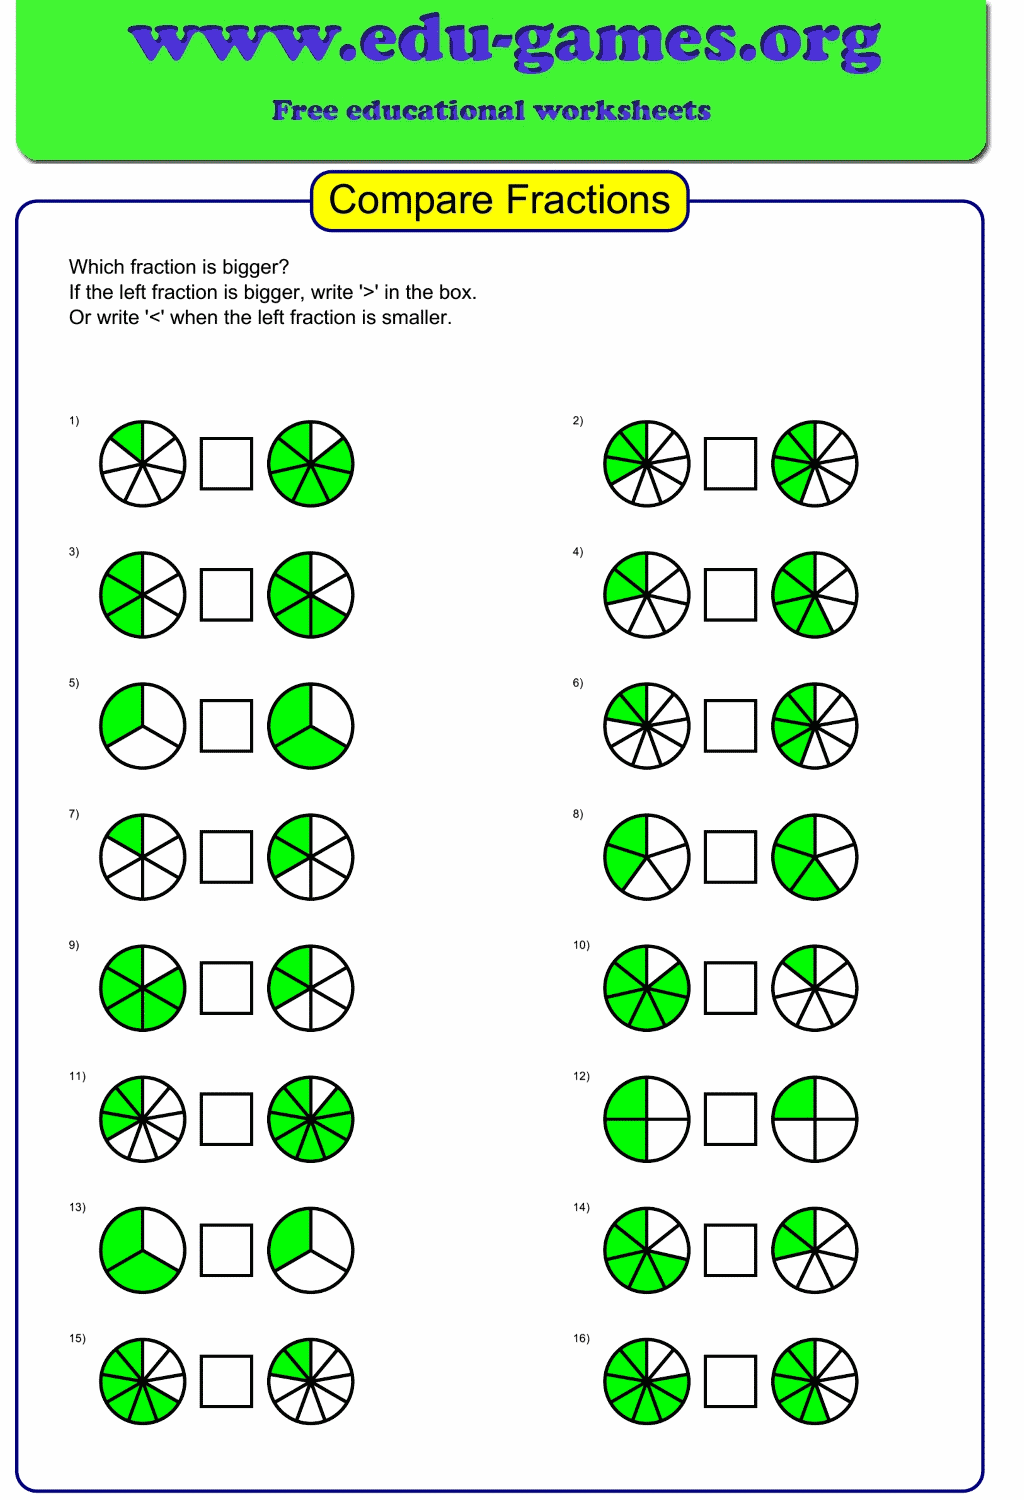 hight resolution of Compare Graphical Fractions Worksheet   Free Printable Worksheets